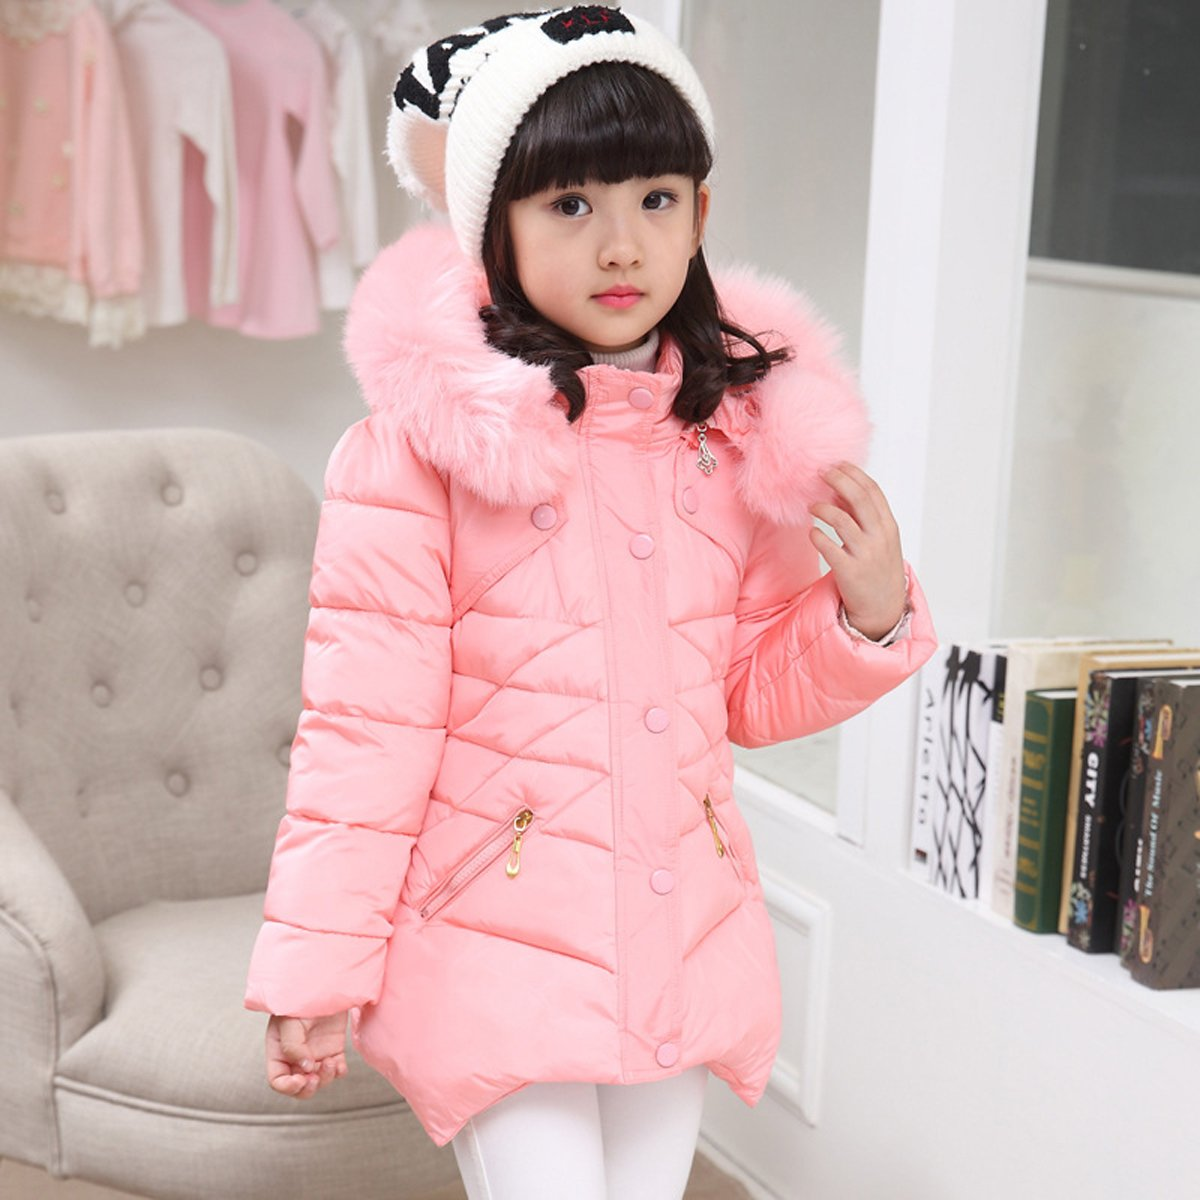 Child Kids Girls Winter Warm Jackets Snowsuit Hooded Windbreaker Outwear With Soft Fur Hoodies For 3-12 Years Old